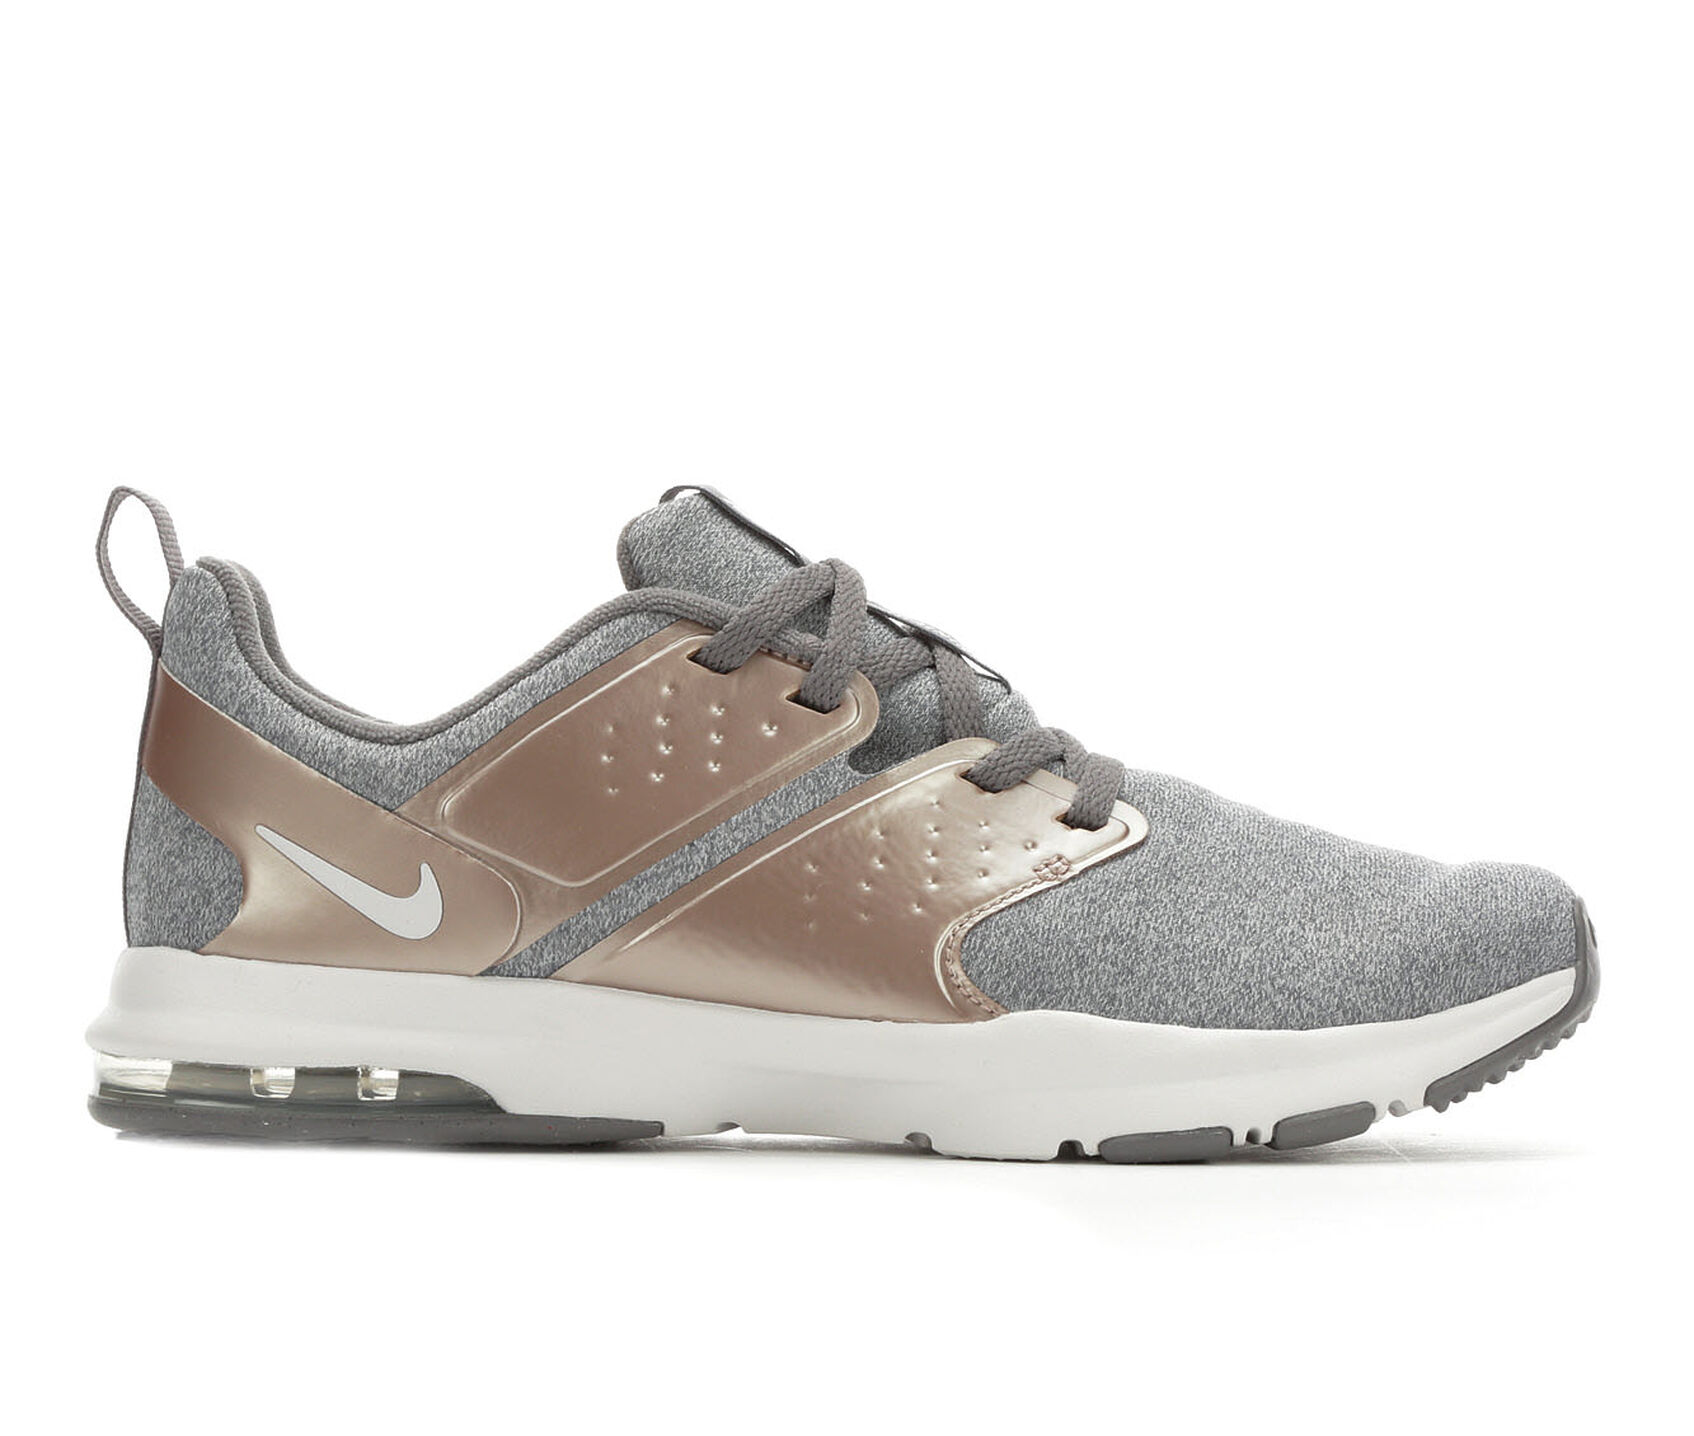 reputable site af084 572a6 Women's Nike Air Bella TR Premuim Training Shoes | Shoe Carnival